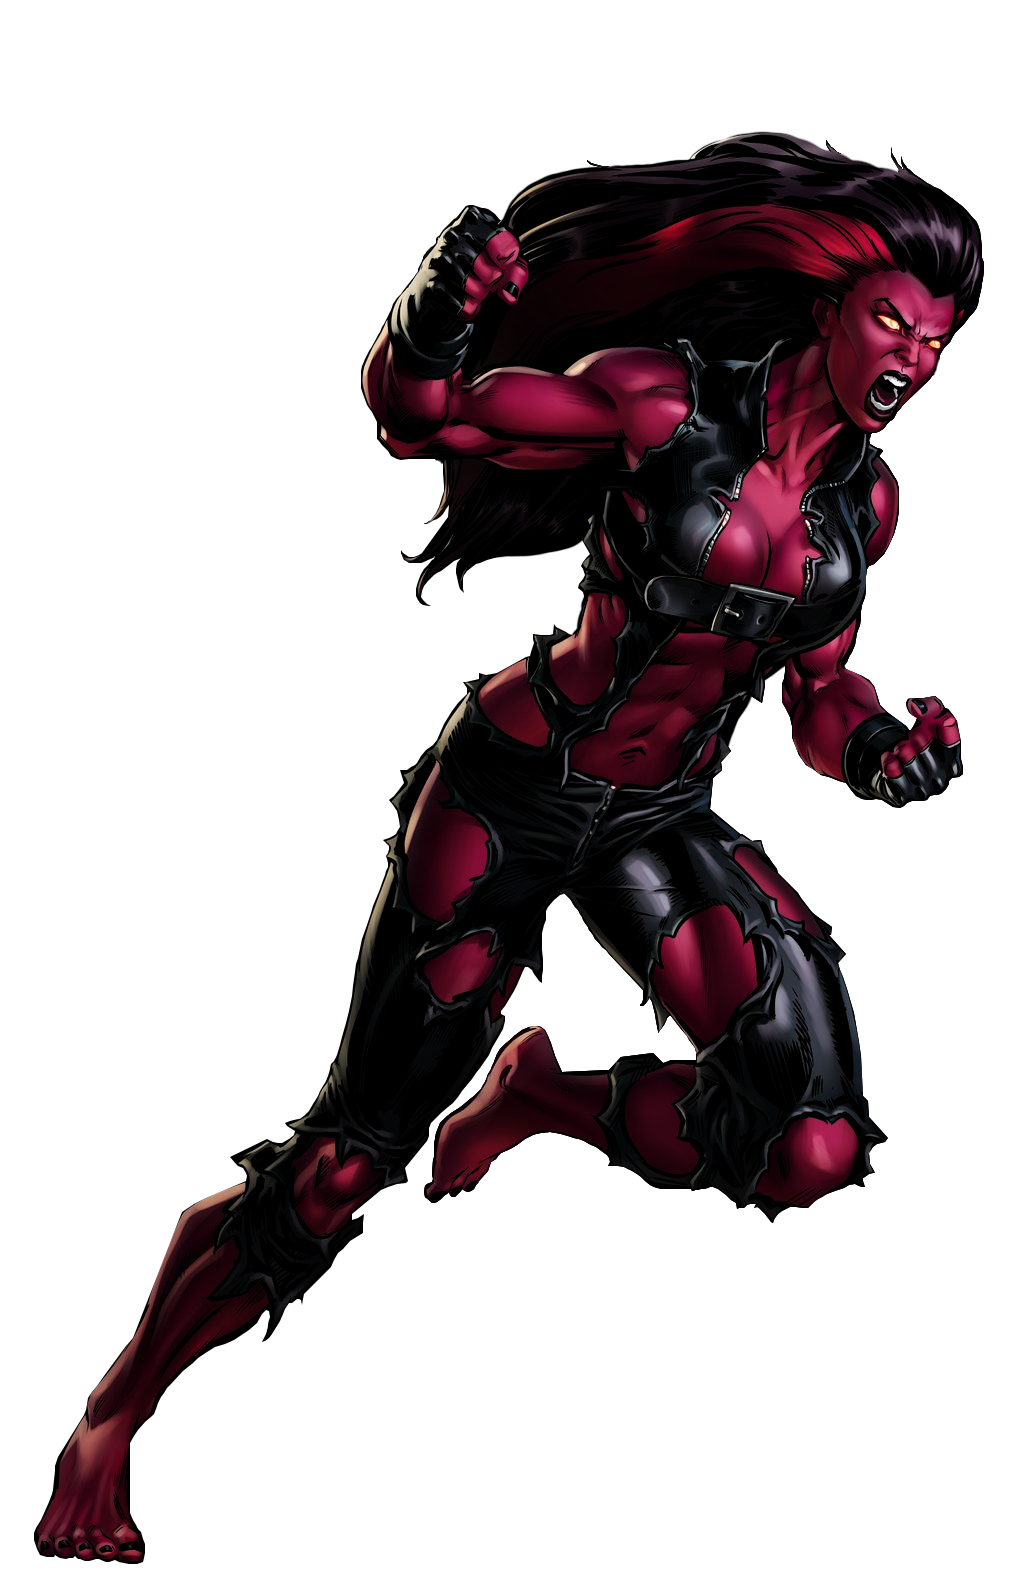 Image - Red She Hulk Portrait Art.png | Marvel: Avengers Alliance Wiki |  FANDOM powered by Wikia - She Hulk PNG